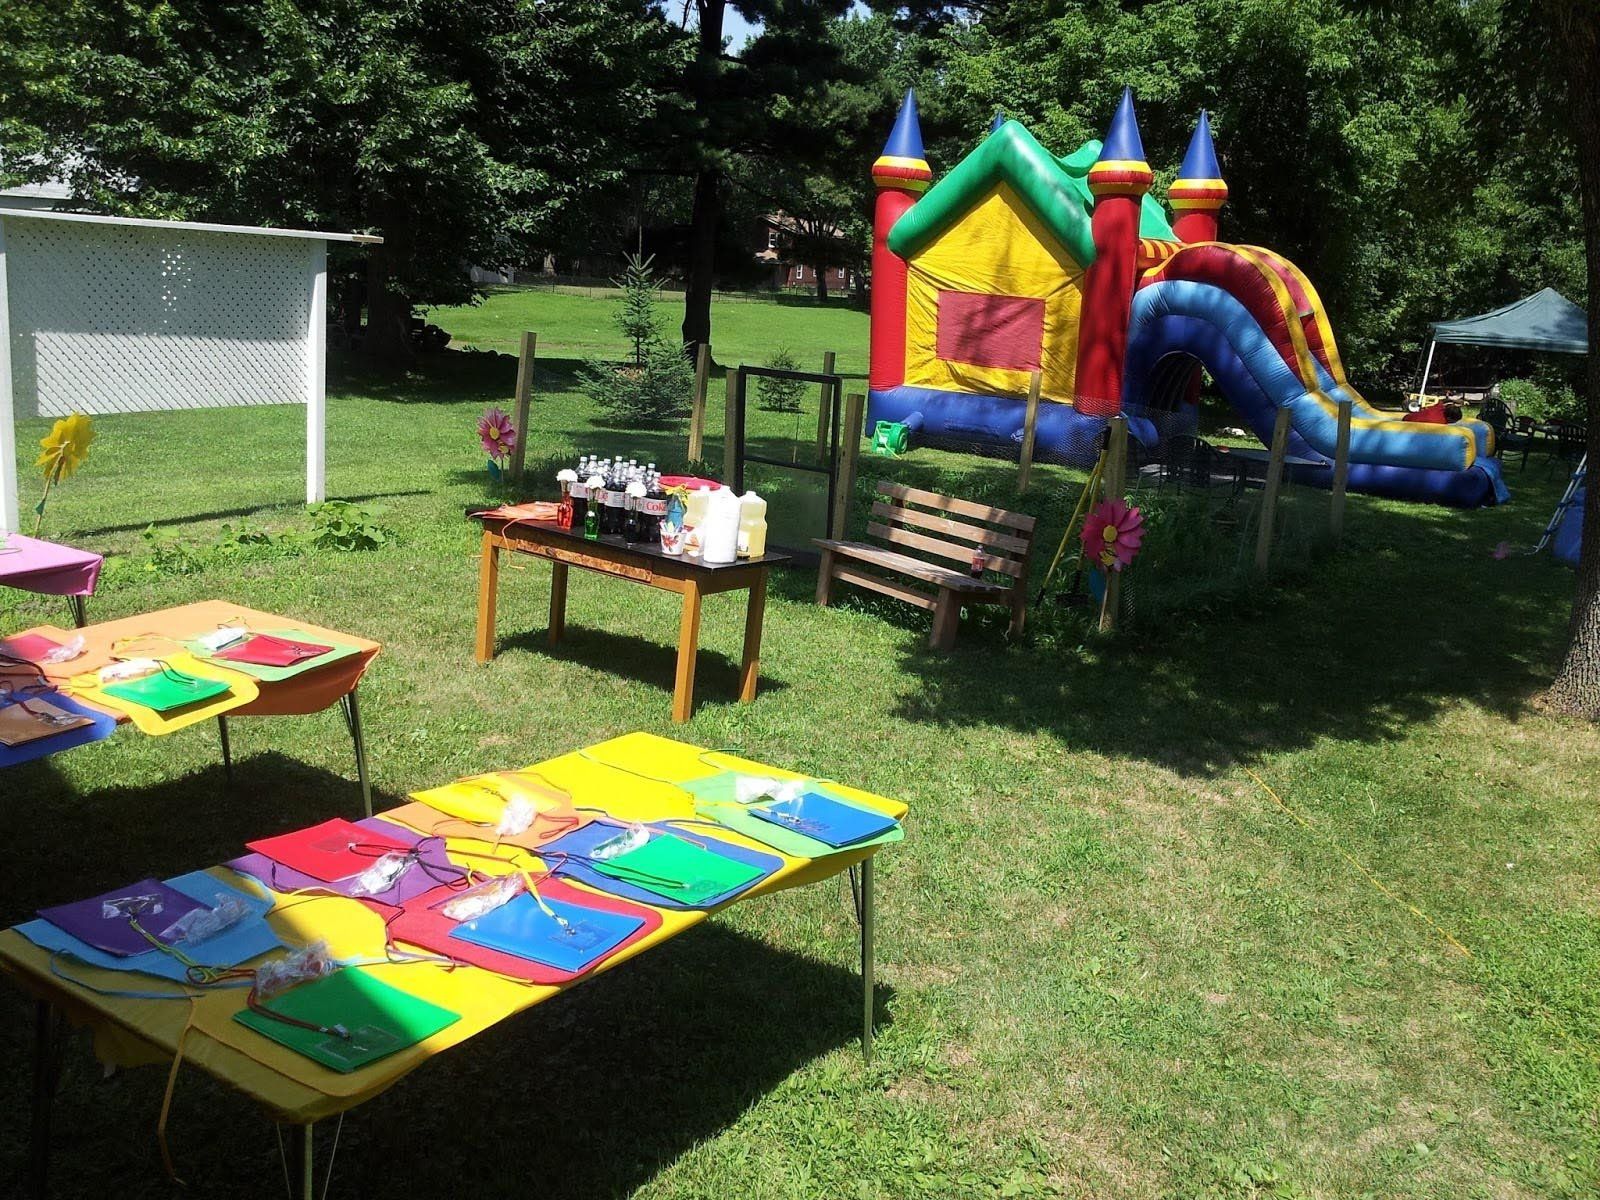 10 Wonderful 1St Birthday Party Game Ideas outdoor activities for 1st birthday party outdoor designs 2020